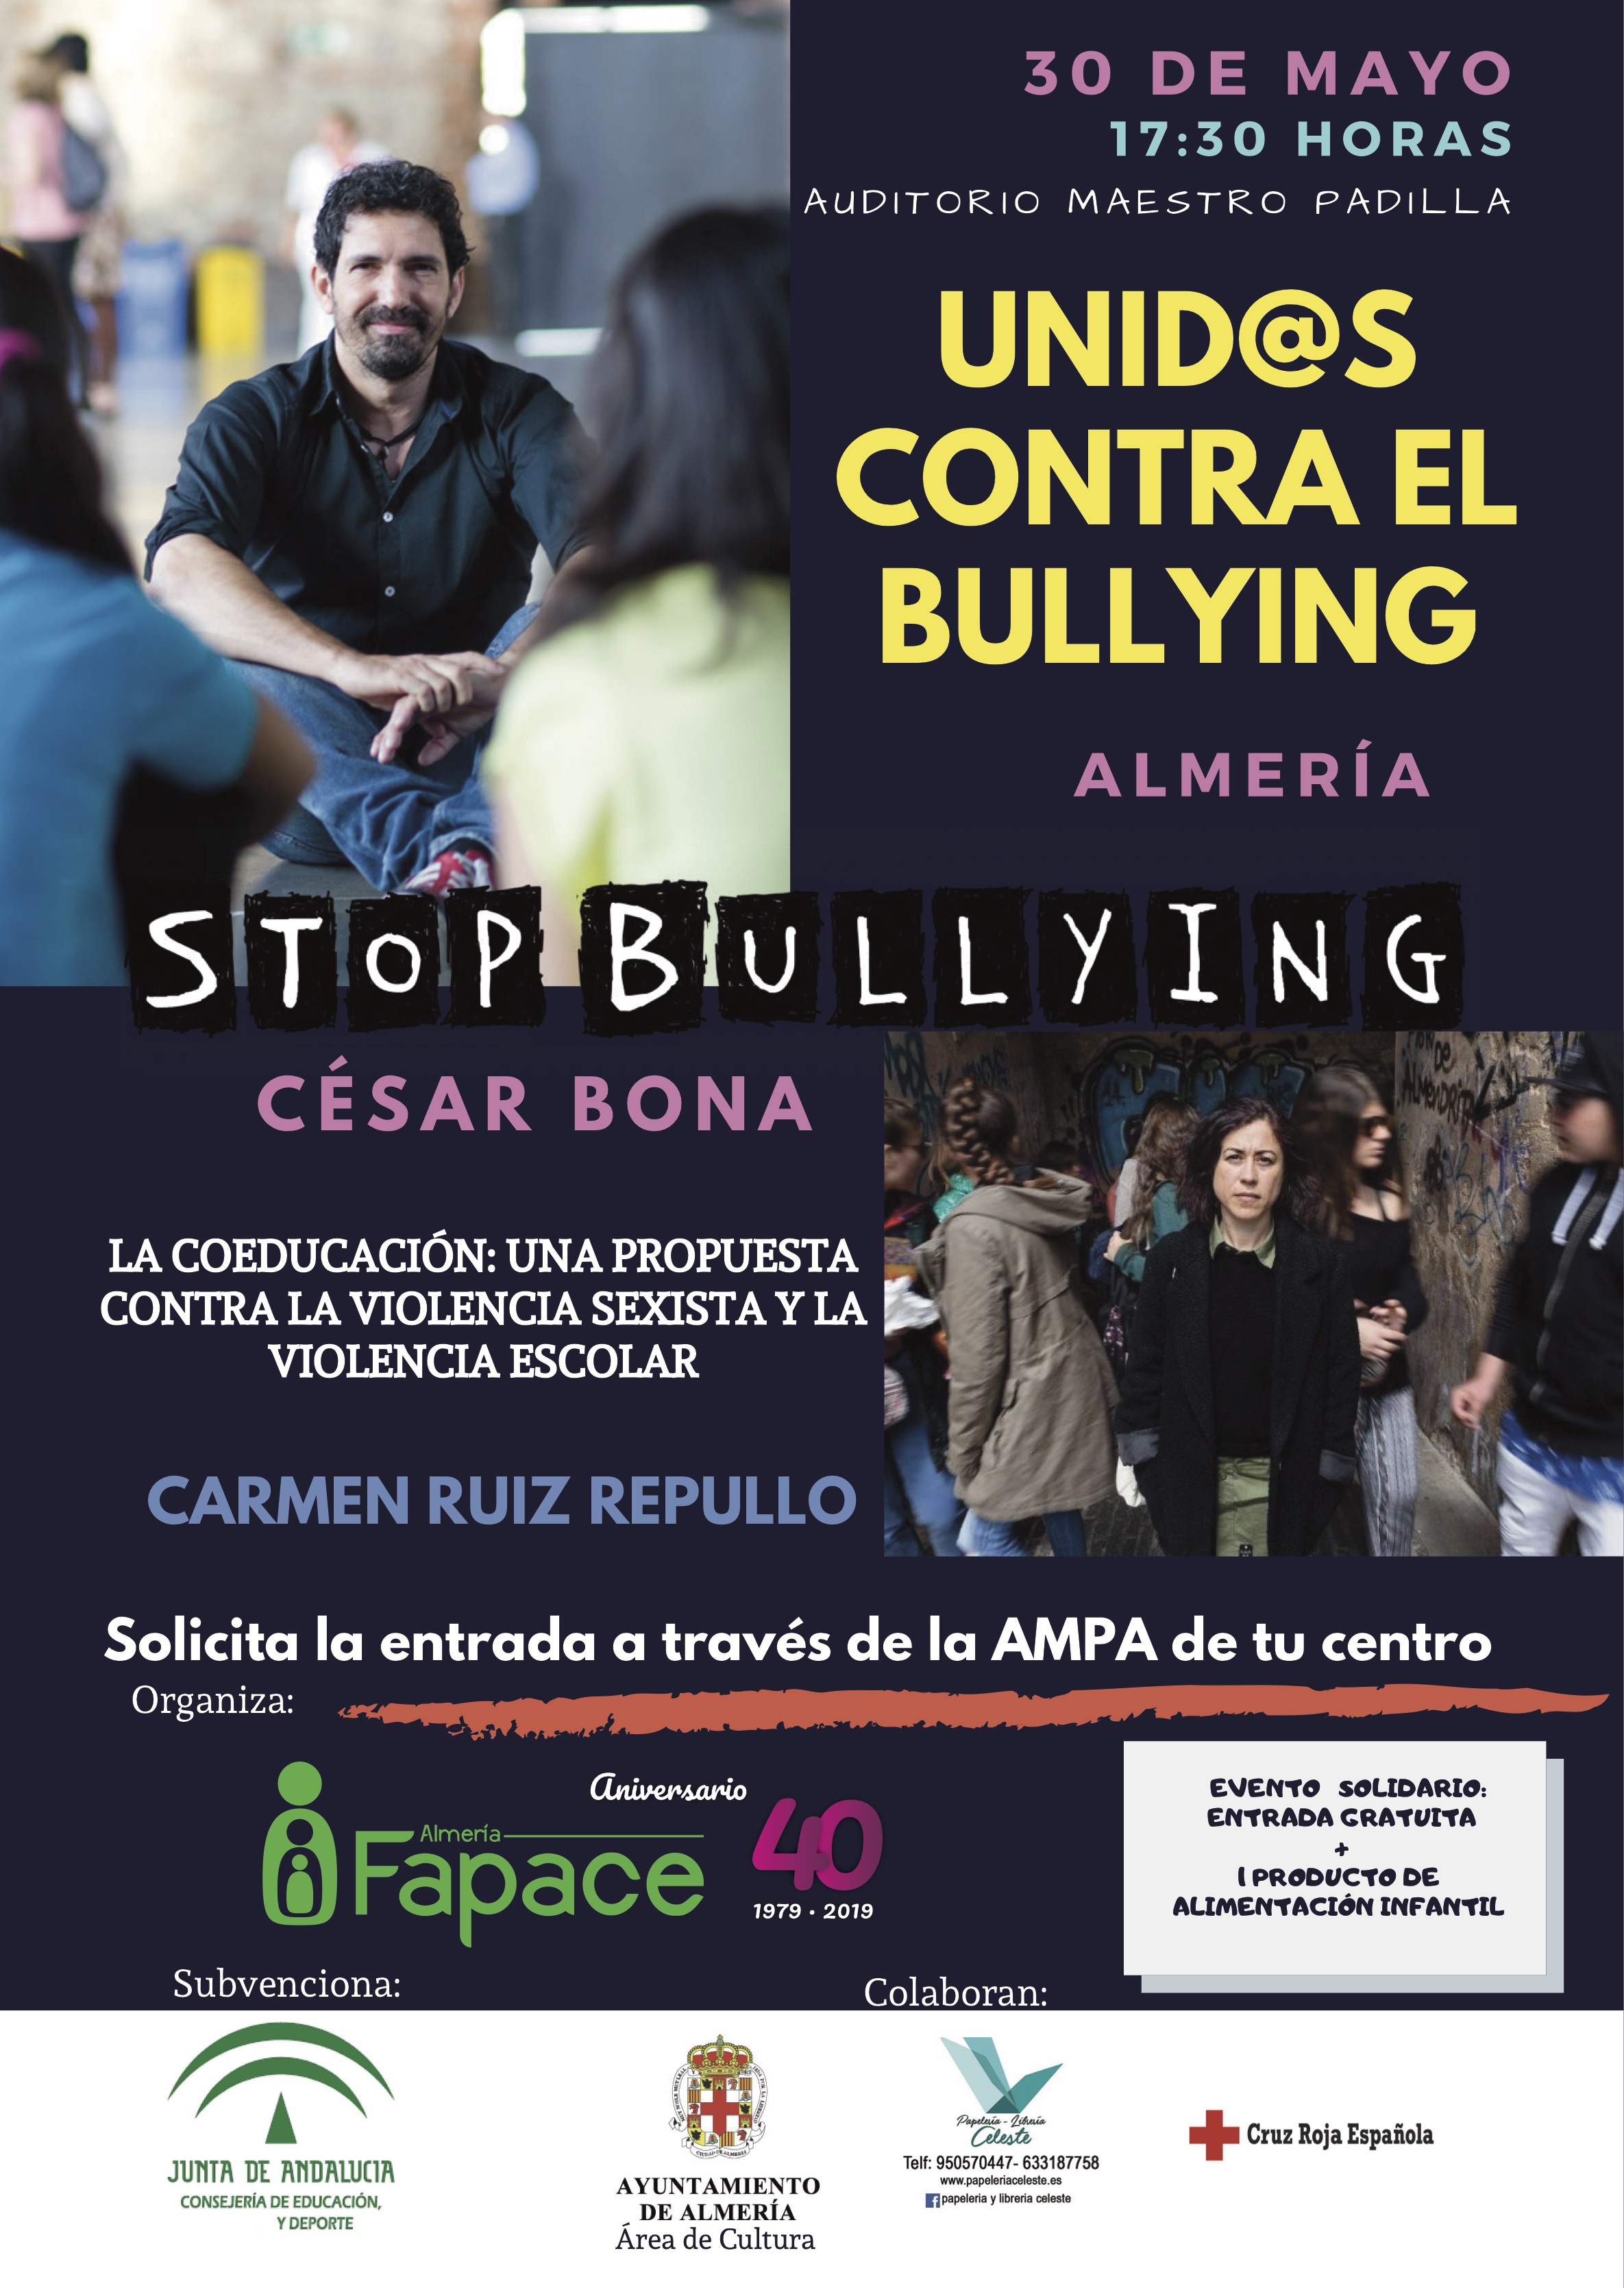 Unid@s contra el bullying